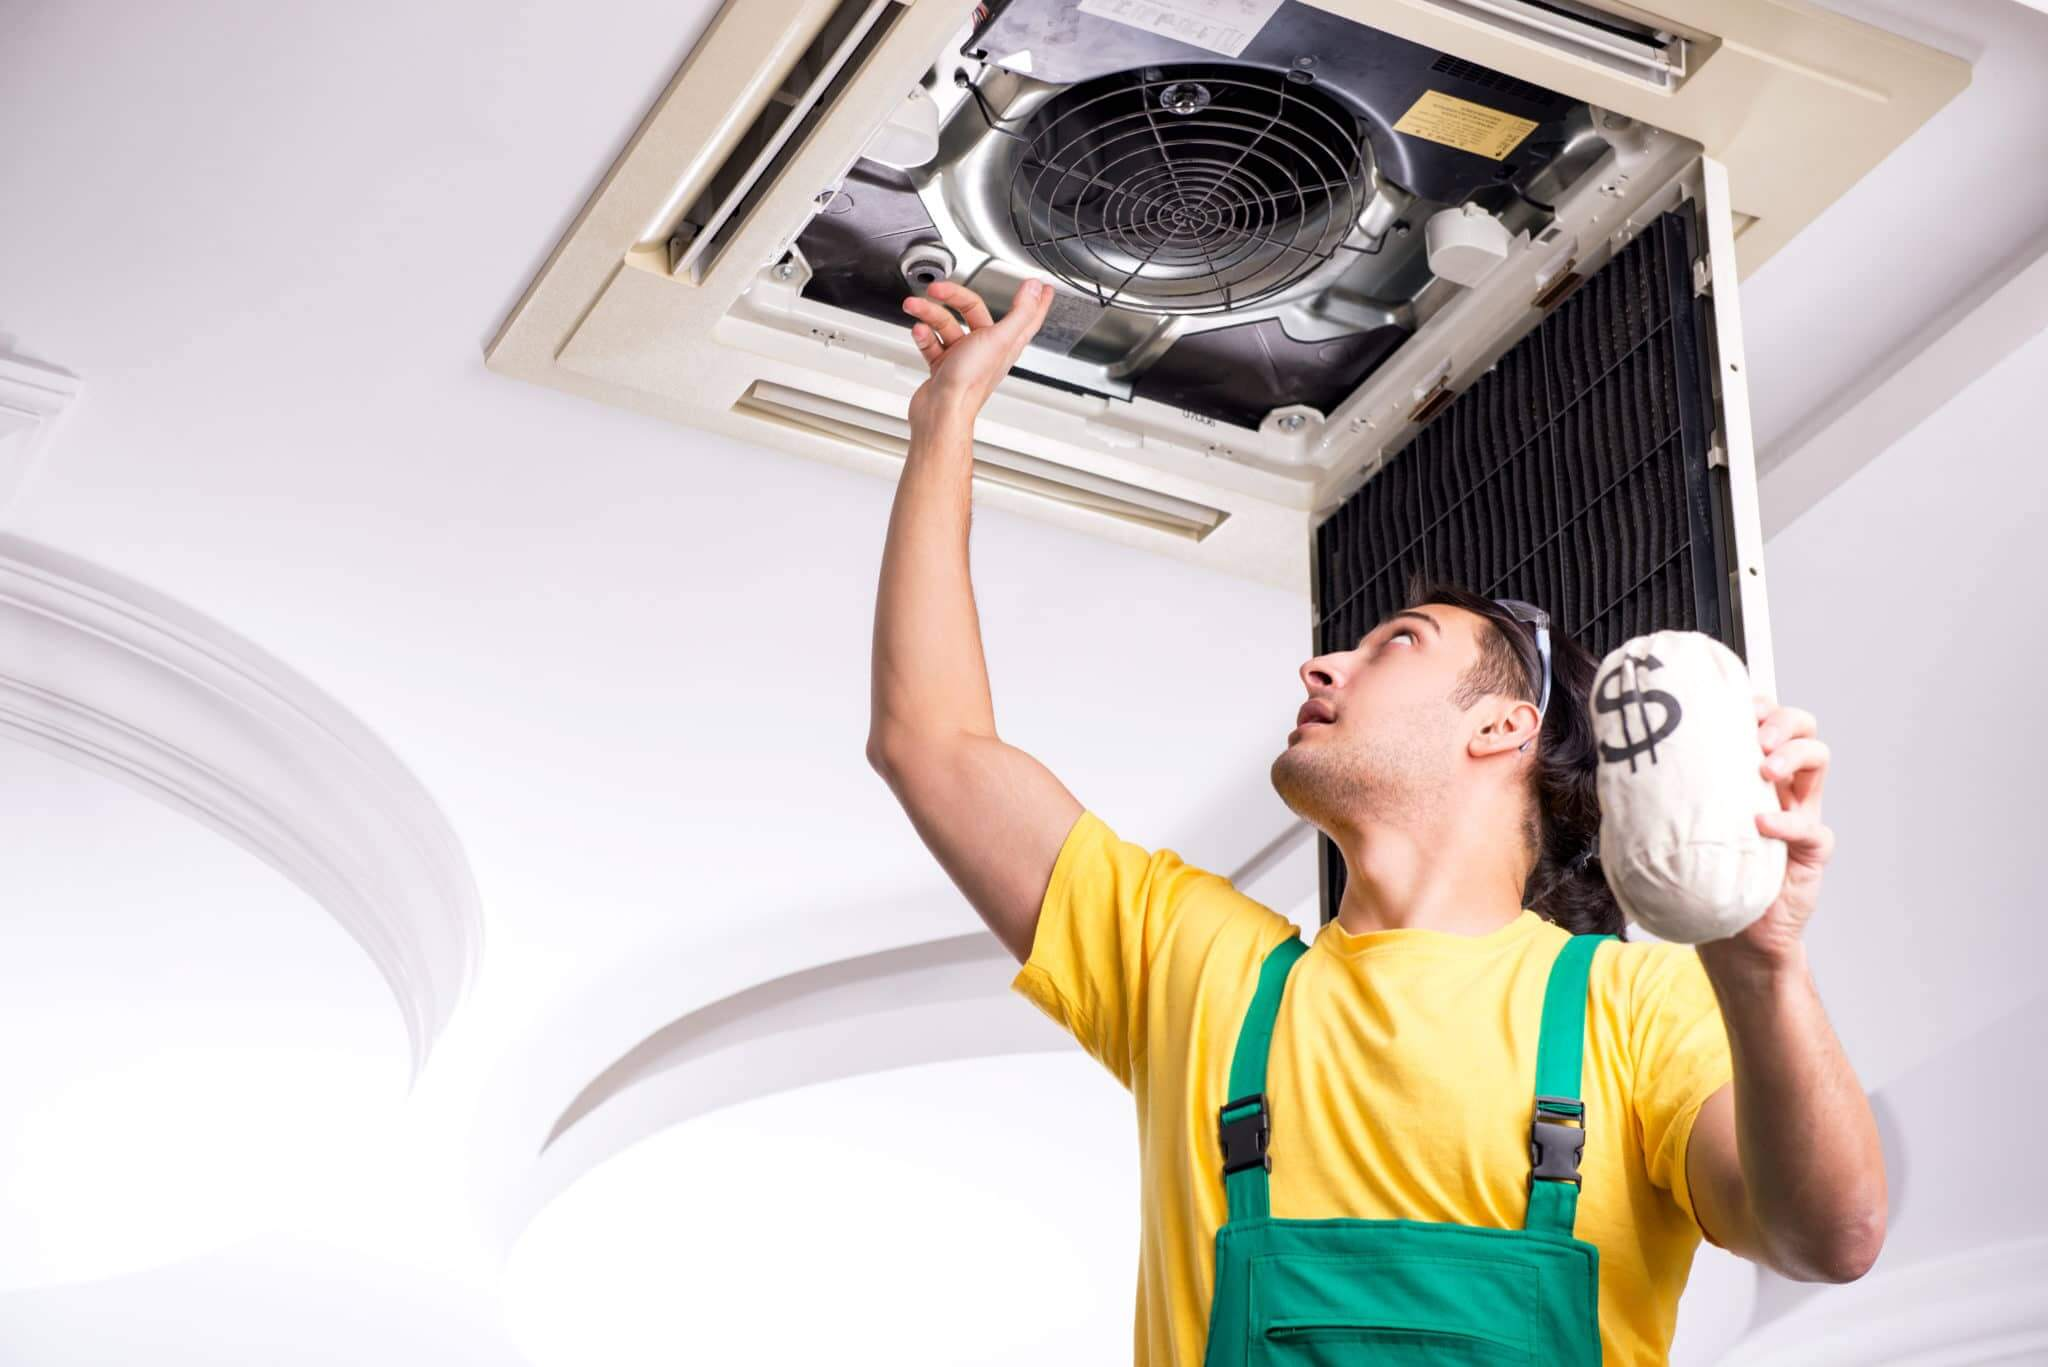 The young repairman repairing ceiling air conditioning unit